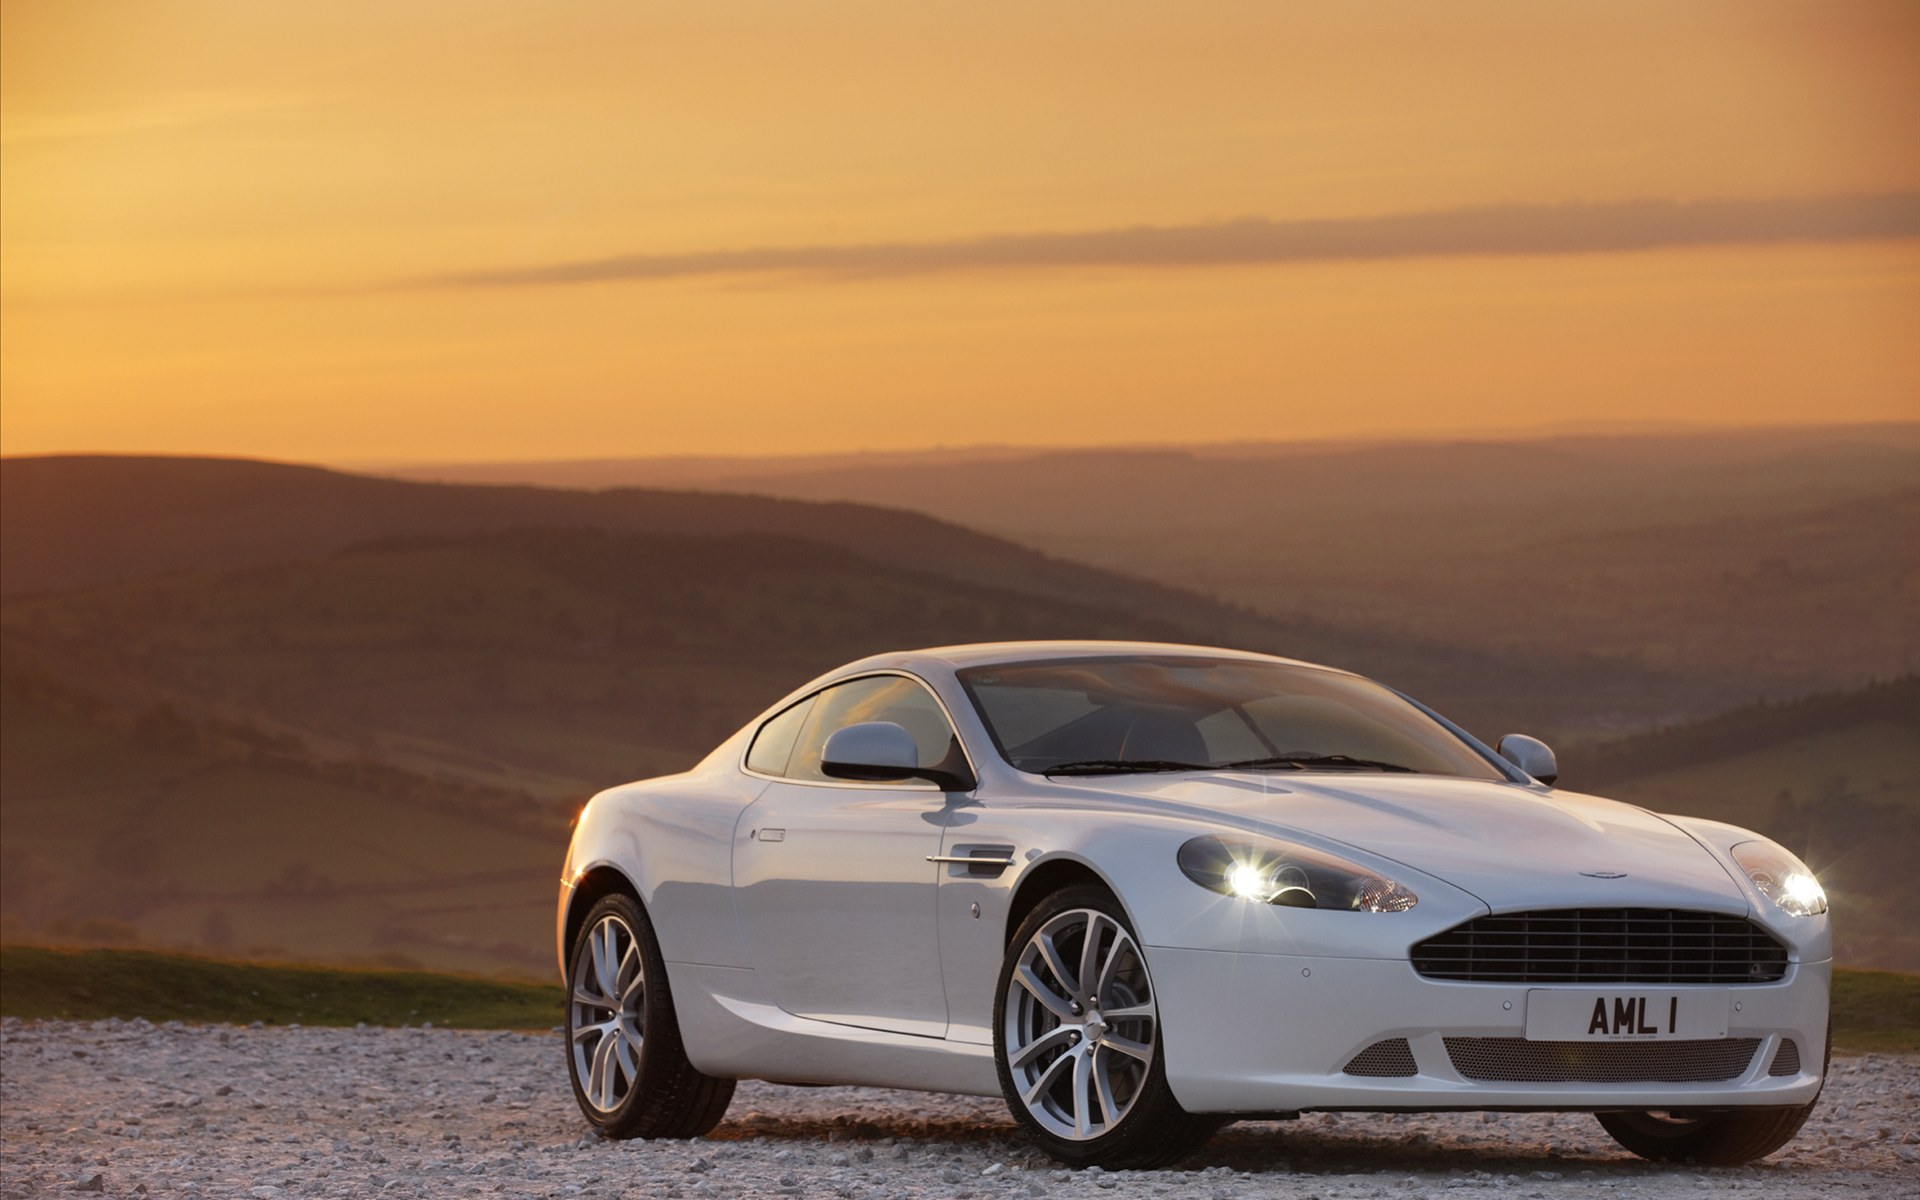 astin martin db9 wallpaper white scene